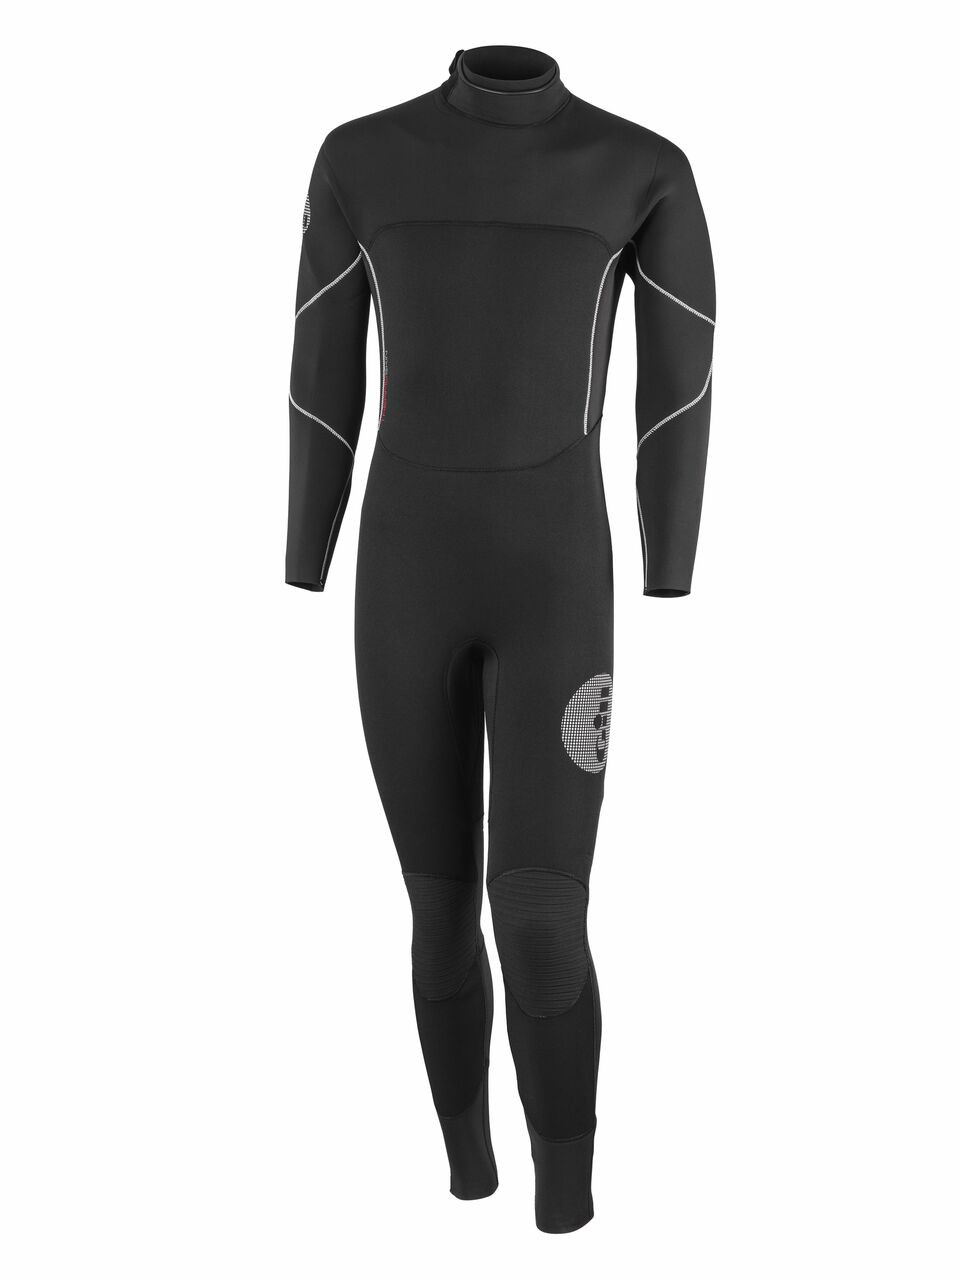 Gill Thermoskin Suit - Men's